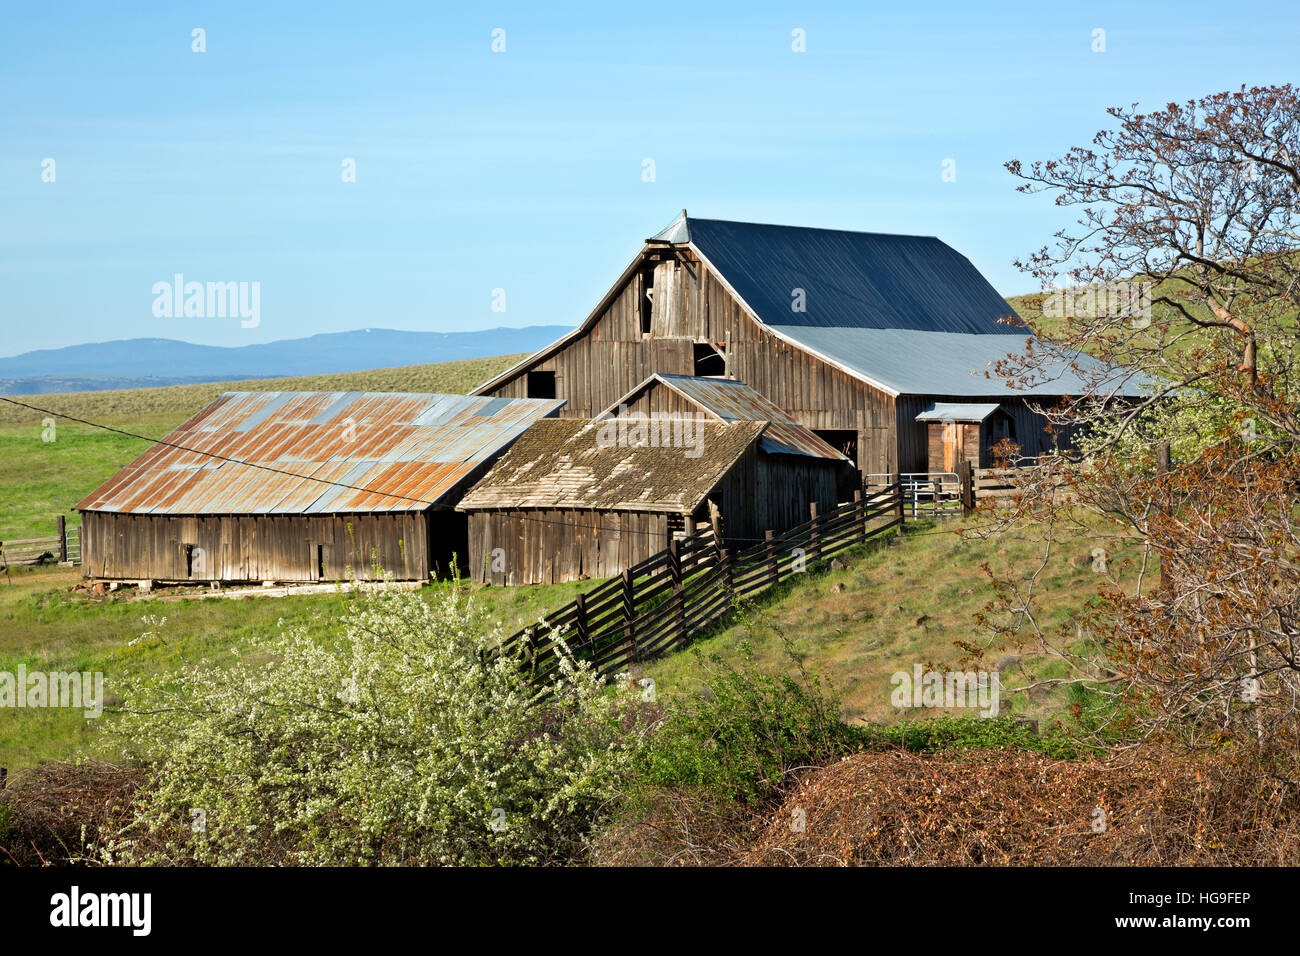 WA13114-00...WASHINGTON - Old barn and outbuildings at the Dalles Mountain Ranch in Columbia Hills State Park. - Stock Image